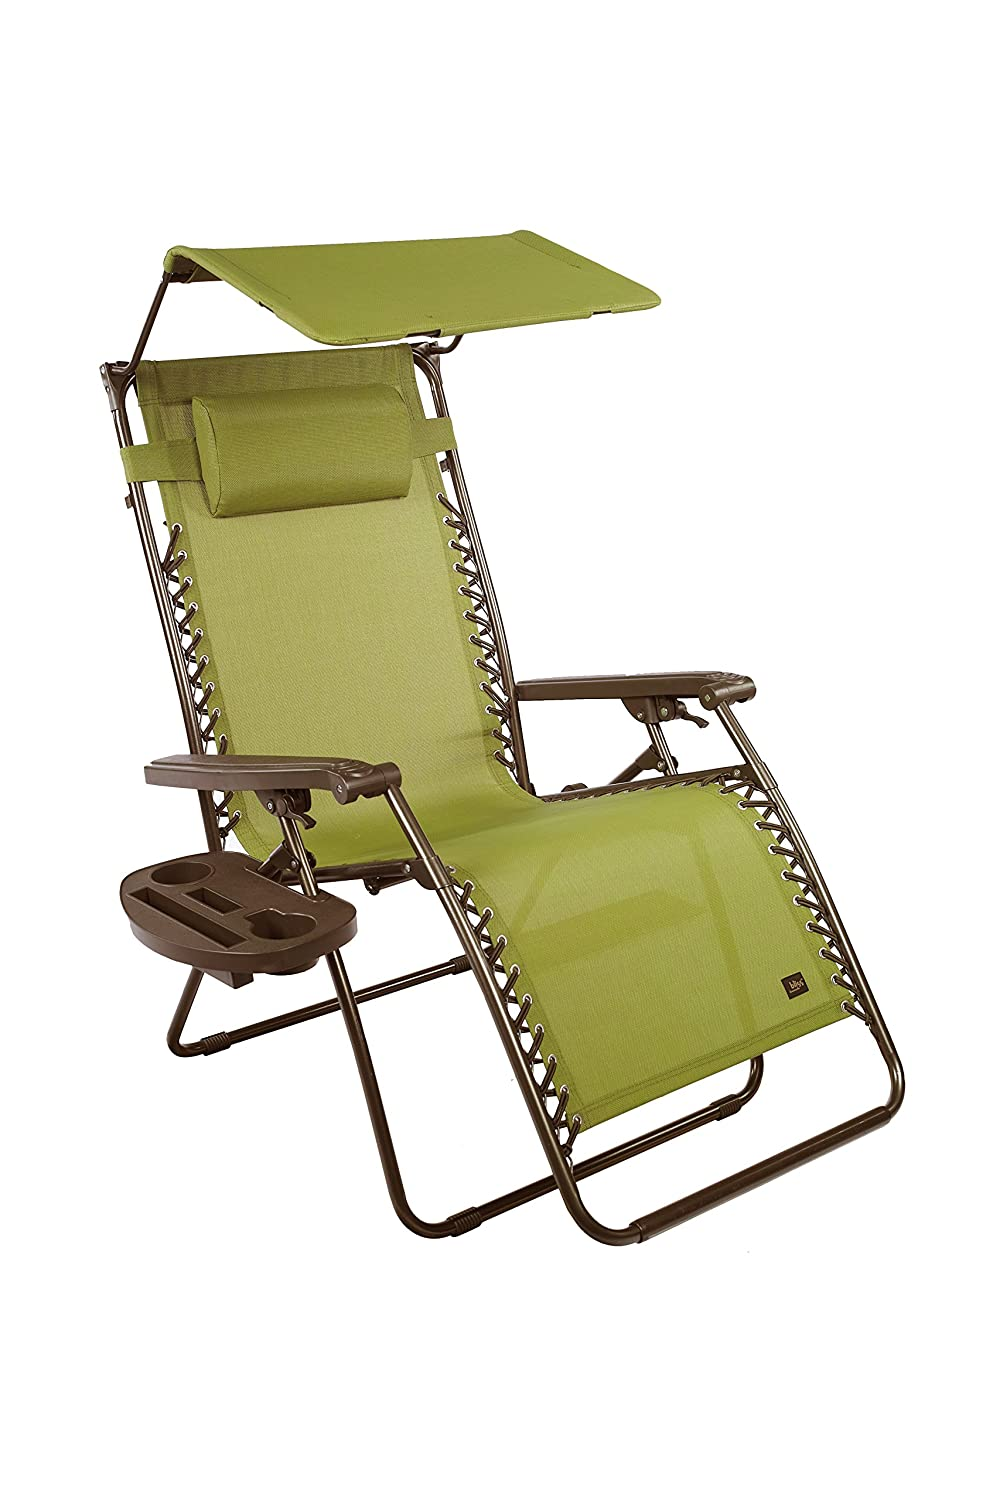 Amazon.com : Bliss Hammocks Wide Gravity Free Lounger With  Pillow/Canopy/Side Tray : Reclining Chari : Garden U0026 Outdoor